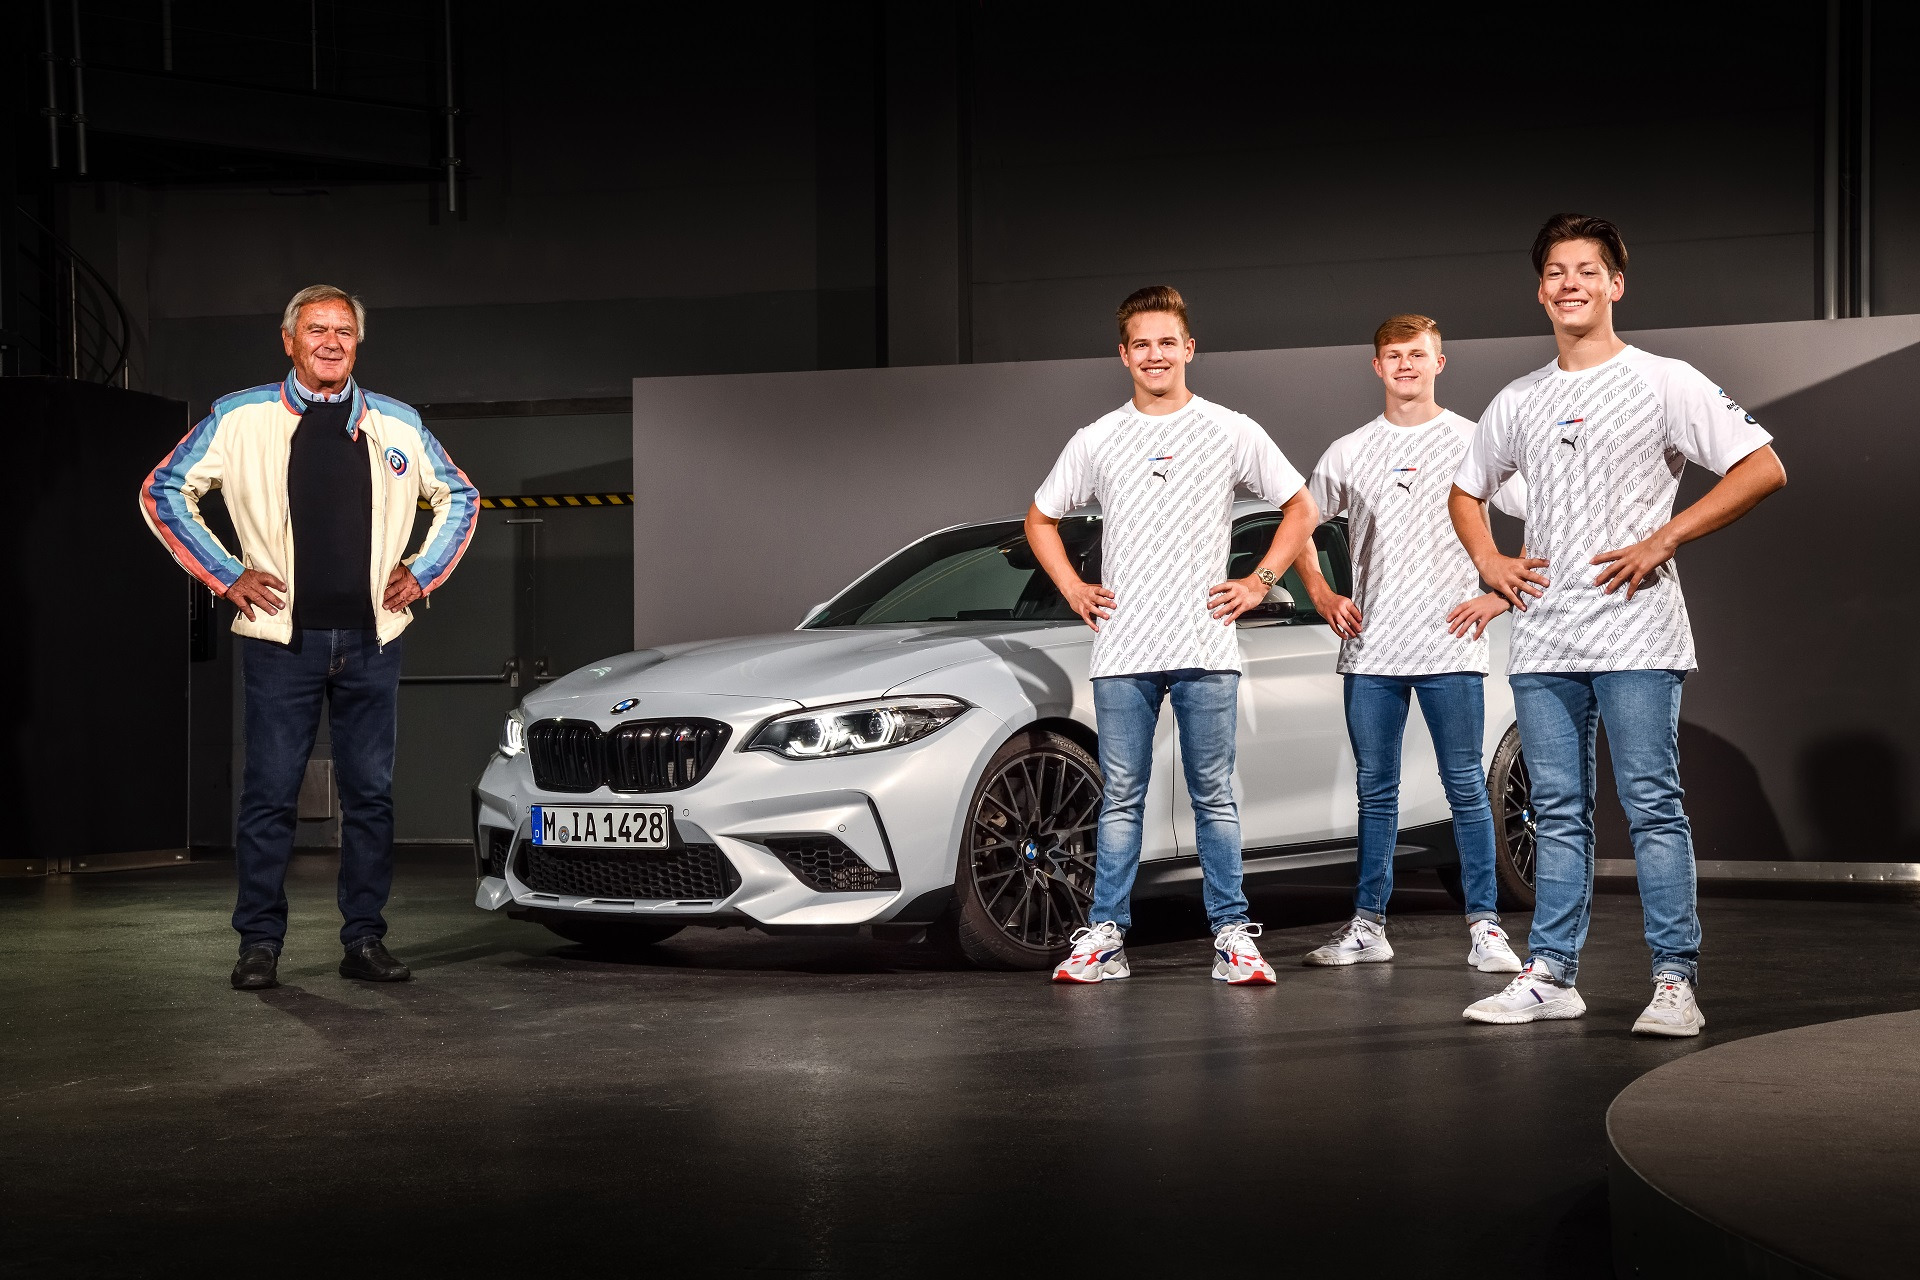 BMW Junior Team members get BMW M cars for everyday fun